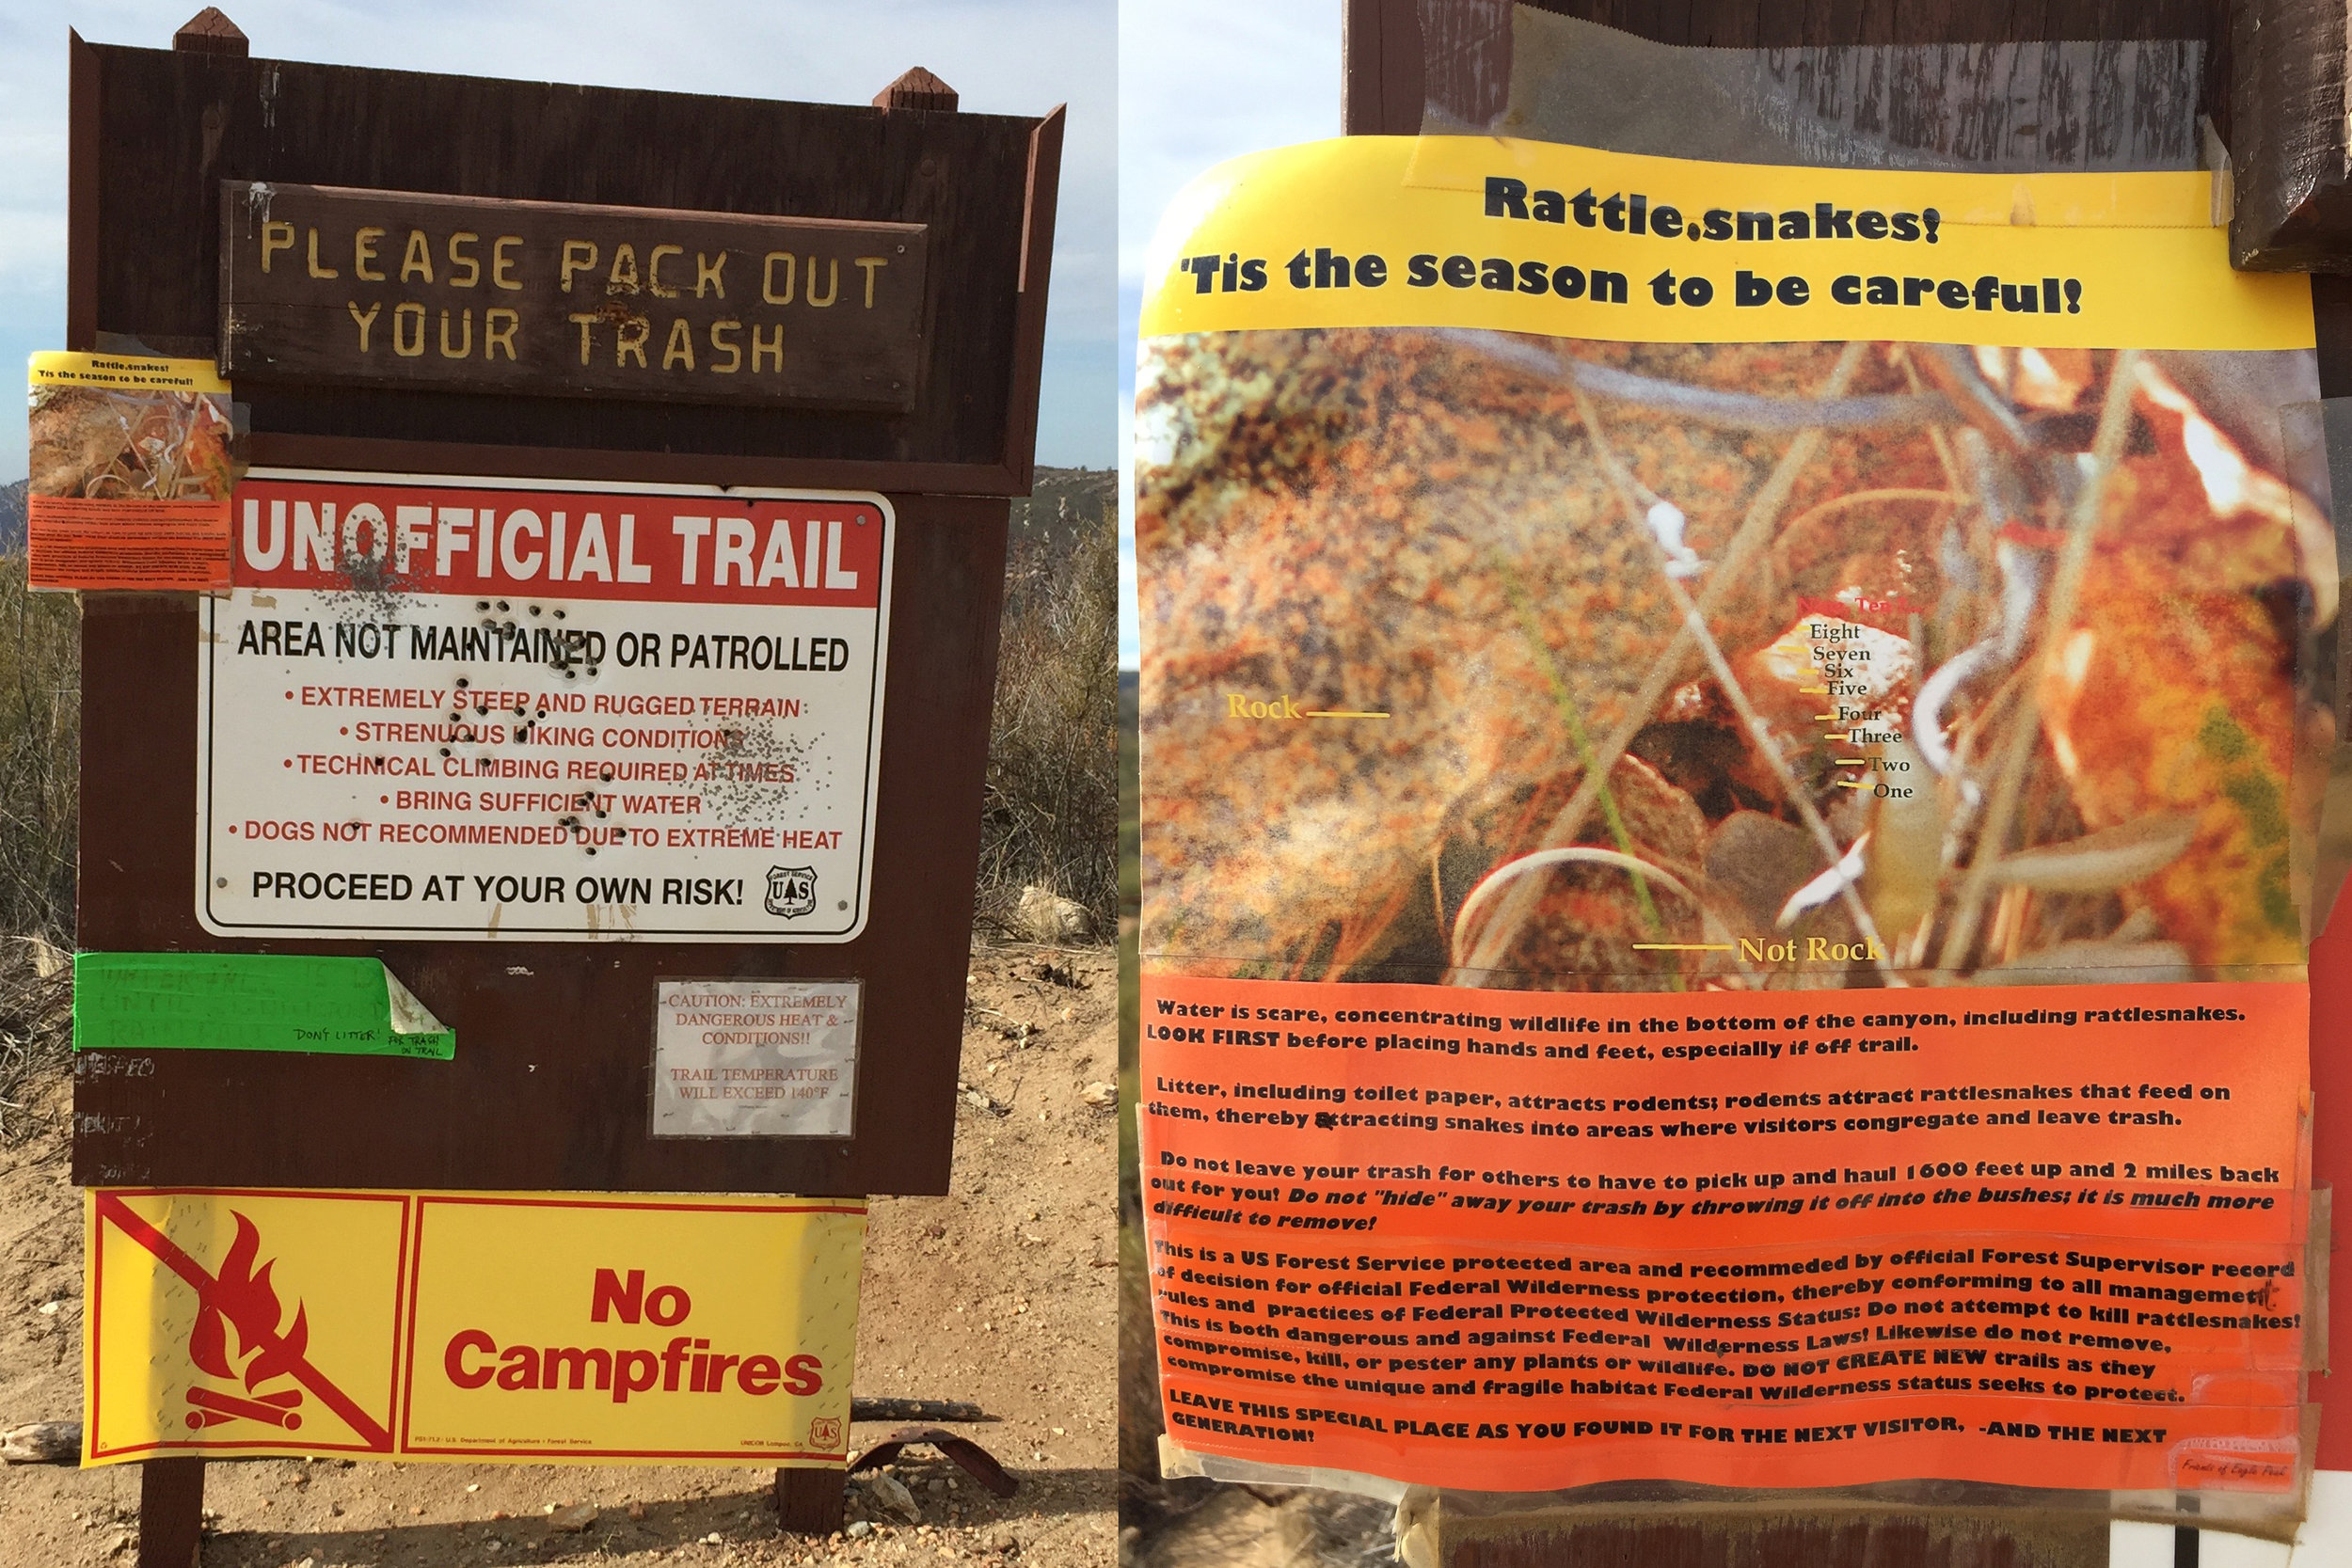 There's a reason why these are posted BEFORE the hike. Next time we'll read them before proceeding.